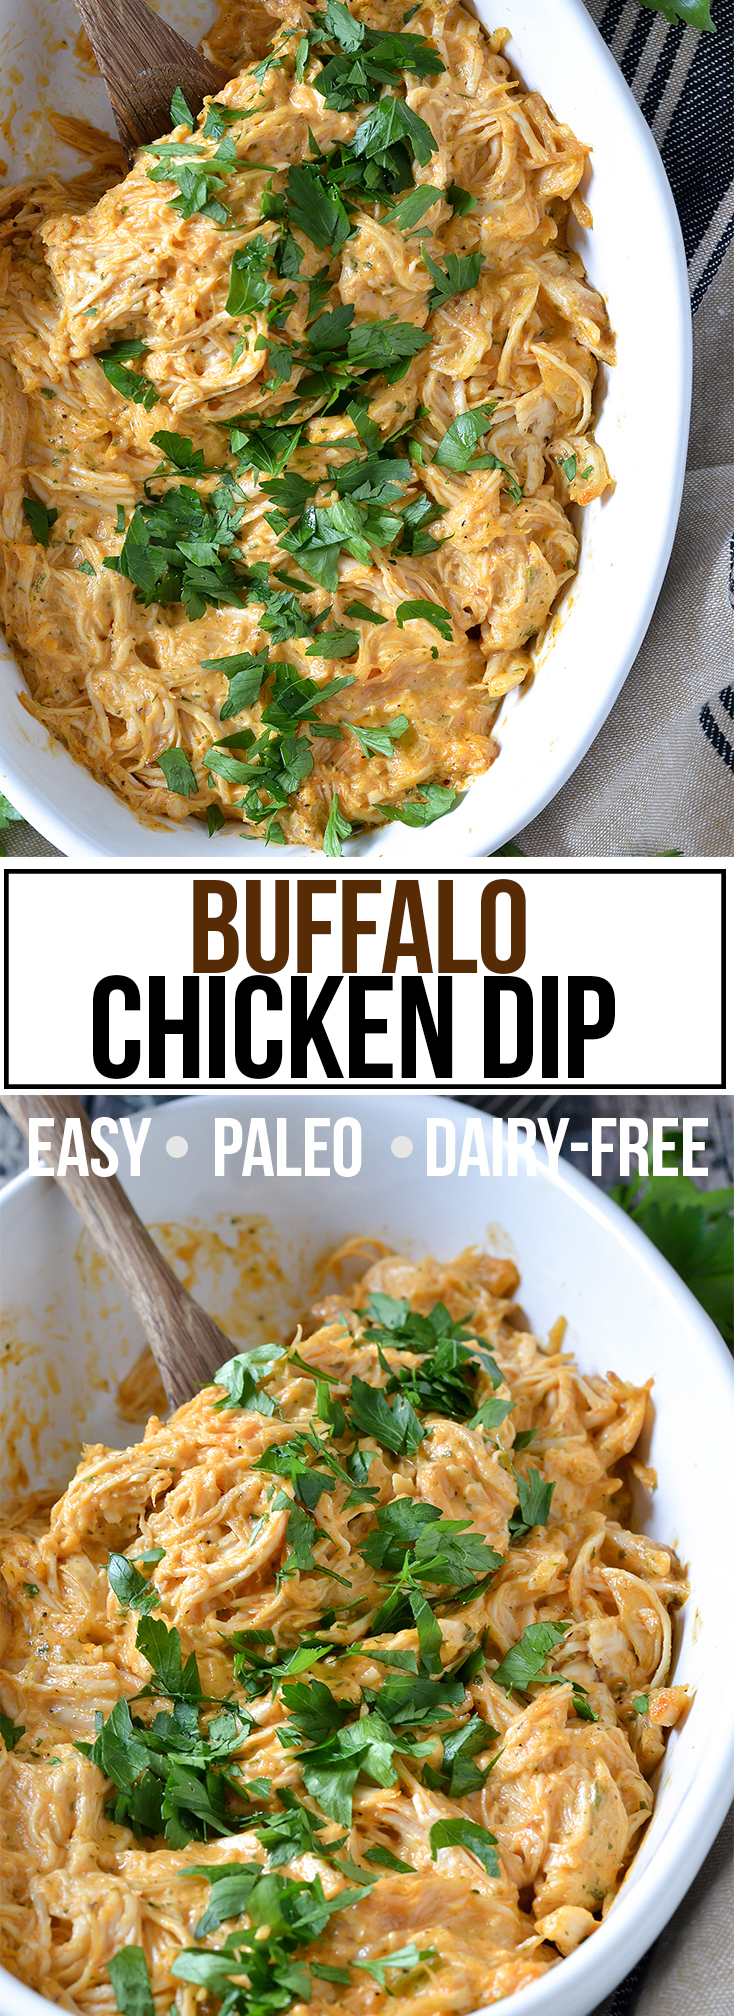 BUFFALO CHICKEN DIP (EASY + PALEO + DAIRY-FREE)